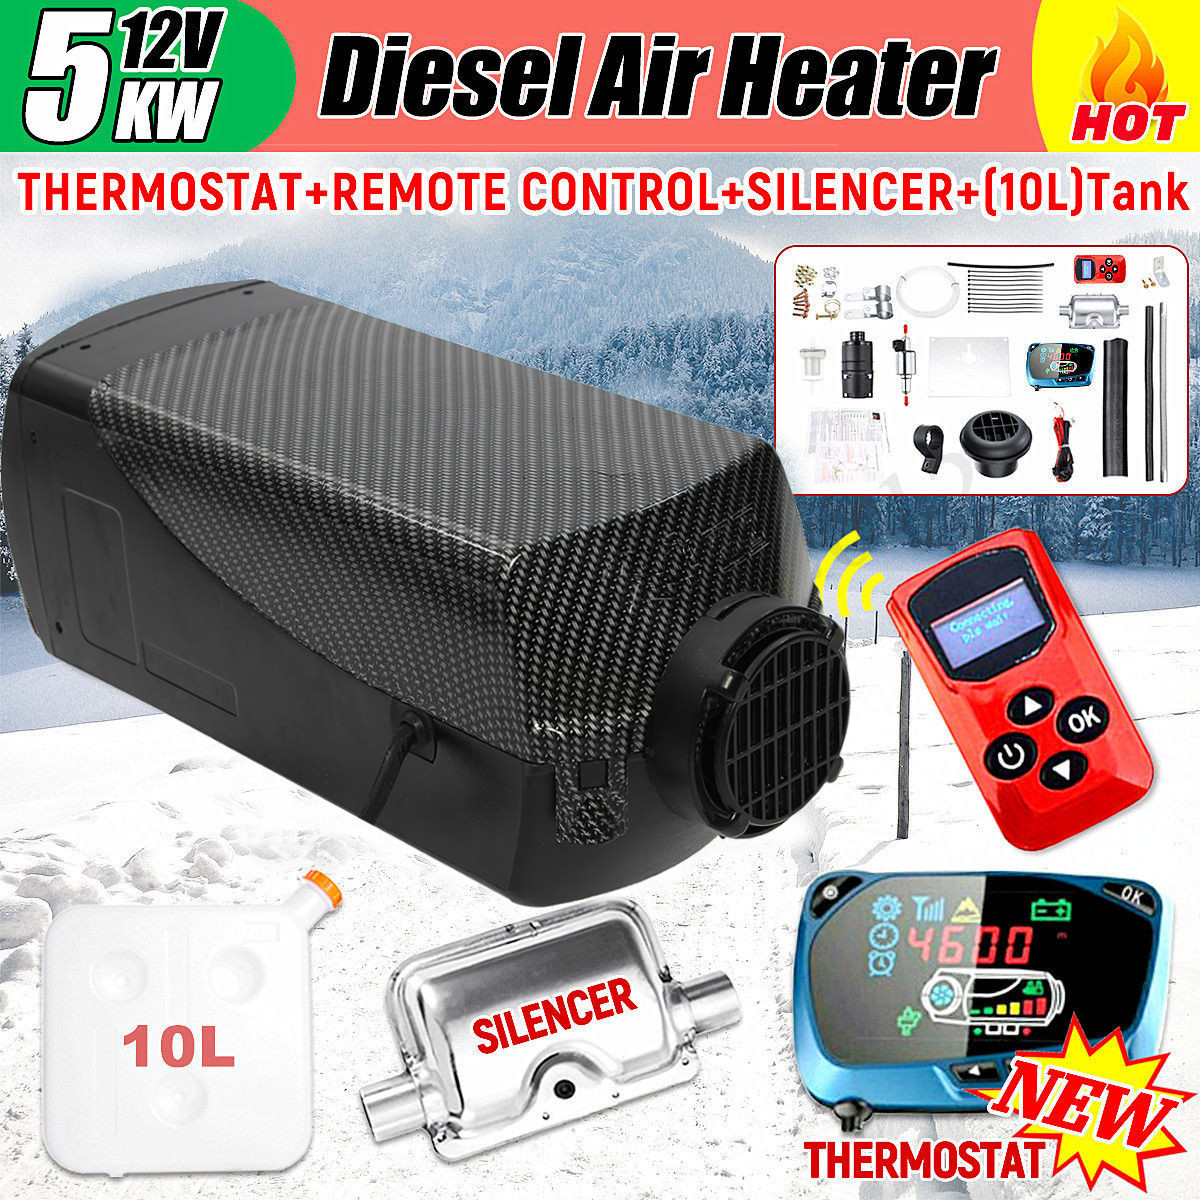 8KW 12V All in One Diesel Fuel Heater with Blue LCD Display Remote Control Single Air Outlet Energy Saving Pump for Car RV Boats Bus Caravan FlowerW Upgraded Diesel Air Heater Parking Heater